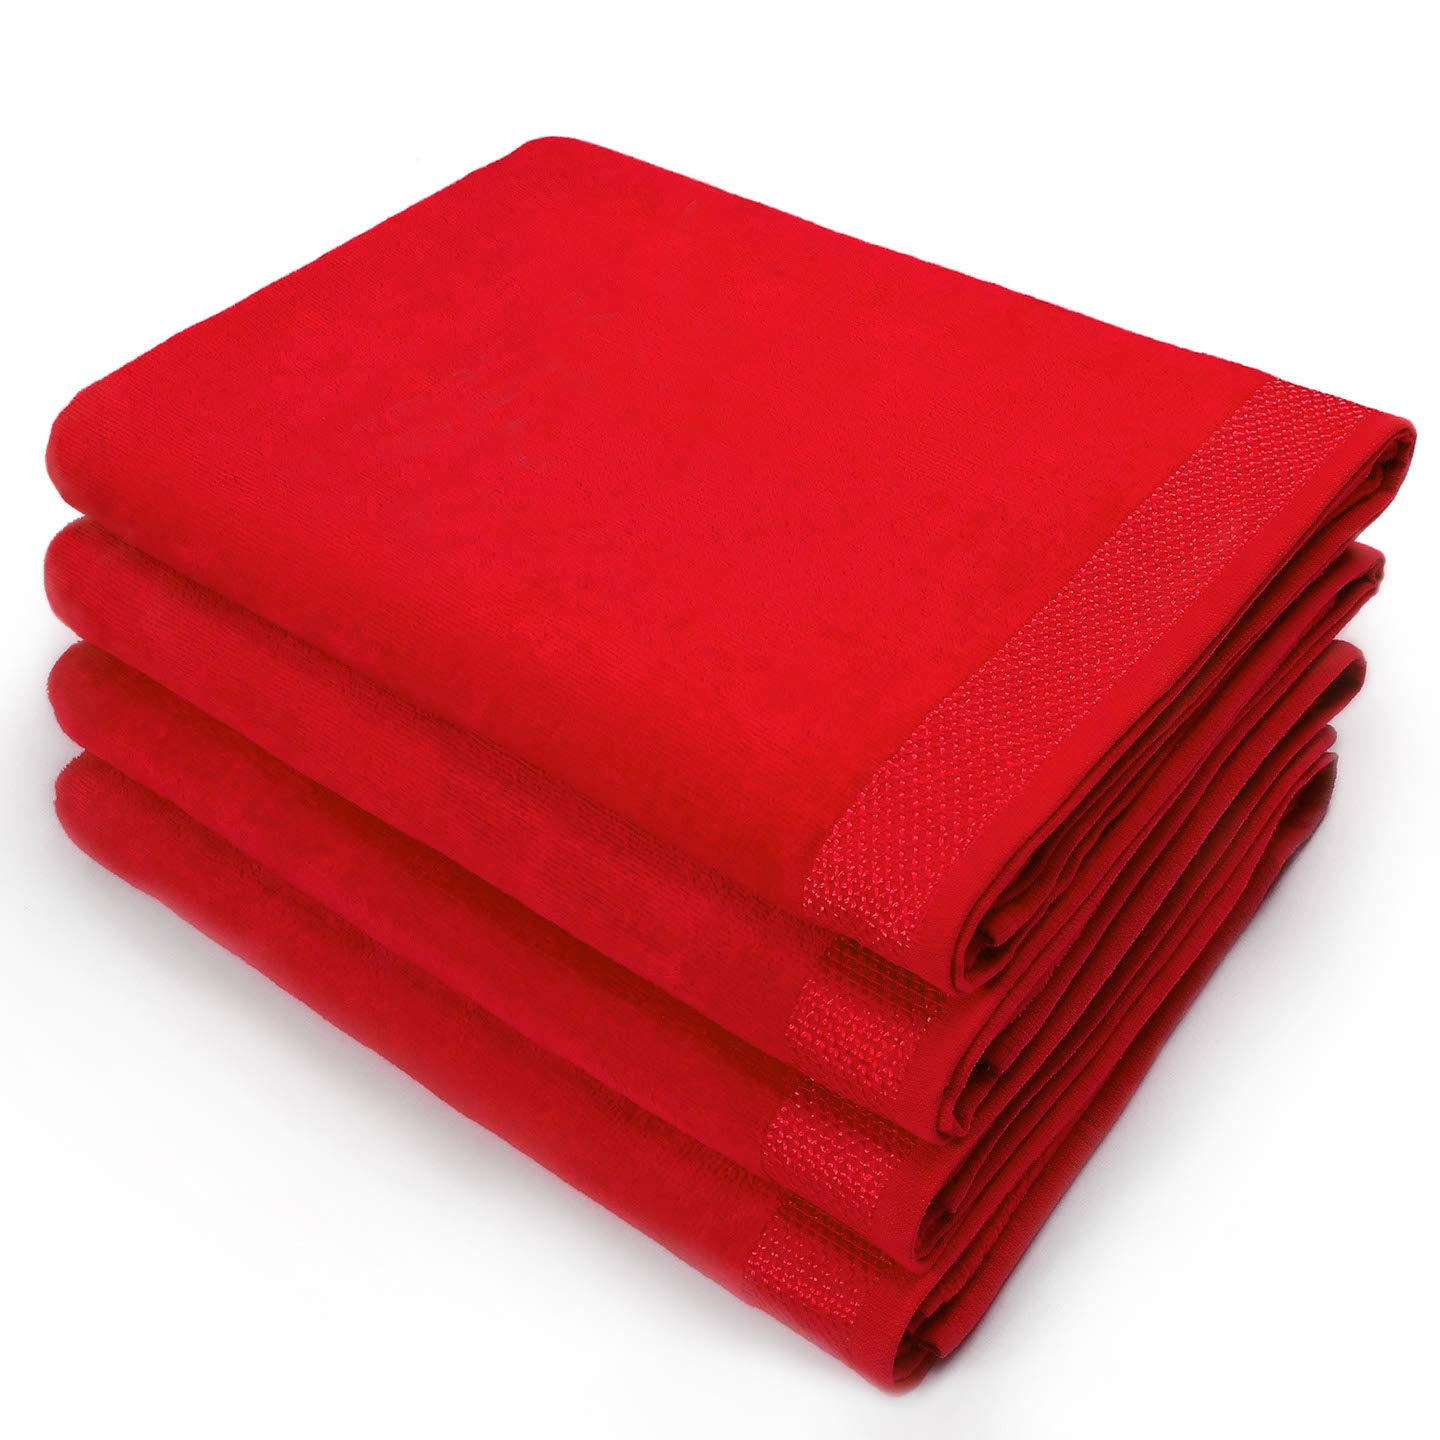 Kaufman - 30 X 60 VELOUR BEACH AND POOL TOWEL 4 PACK (Red)